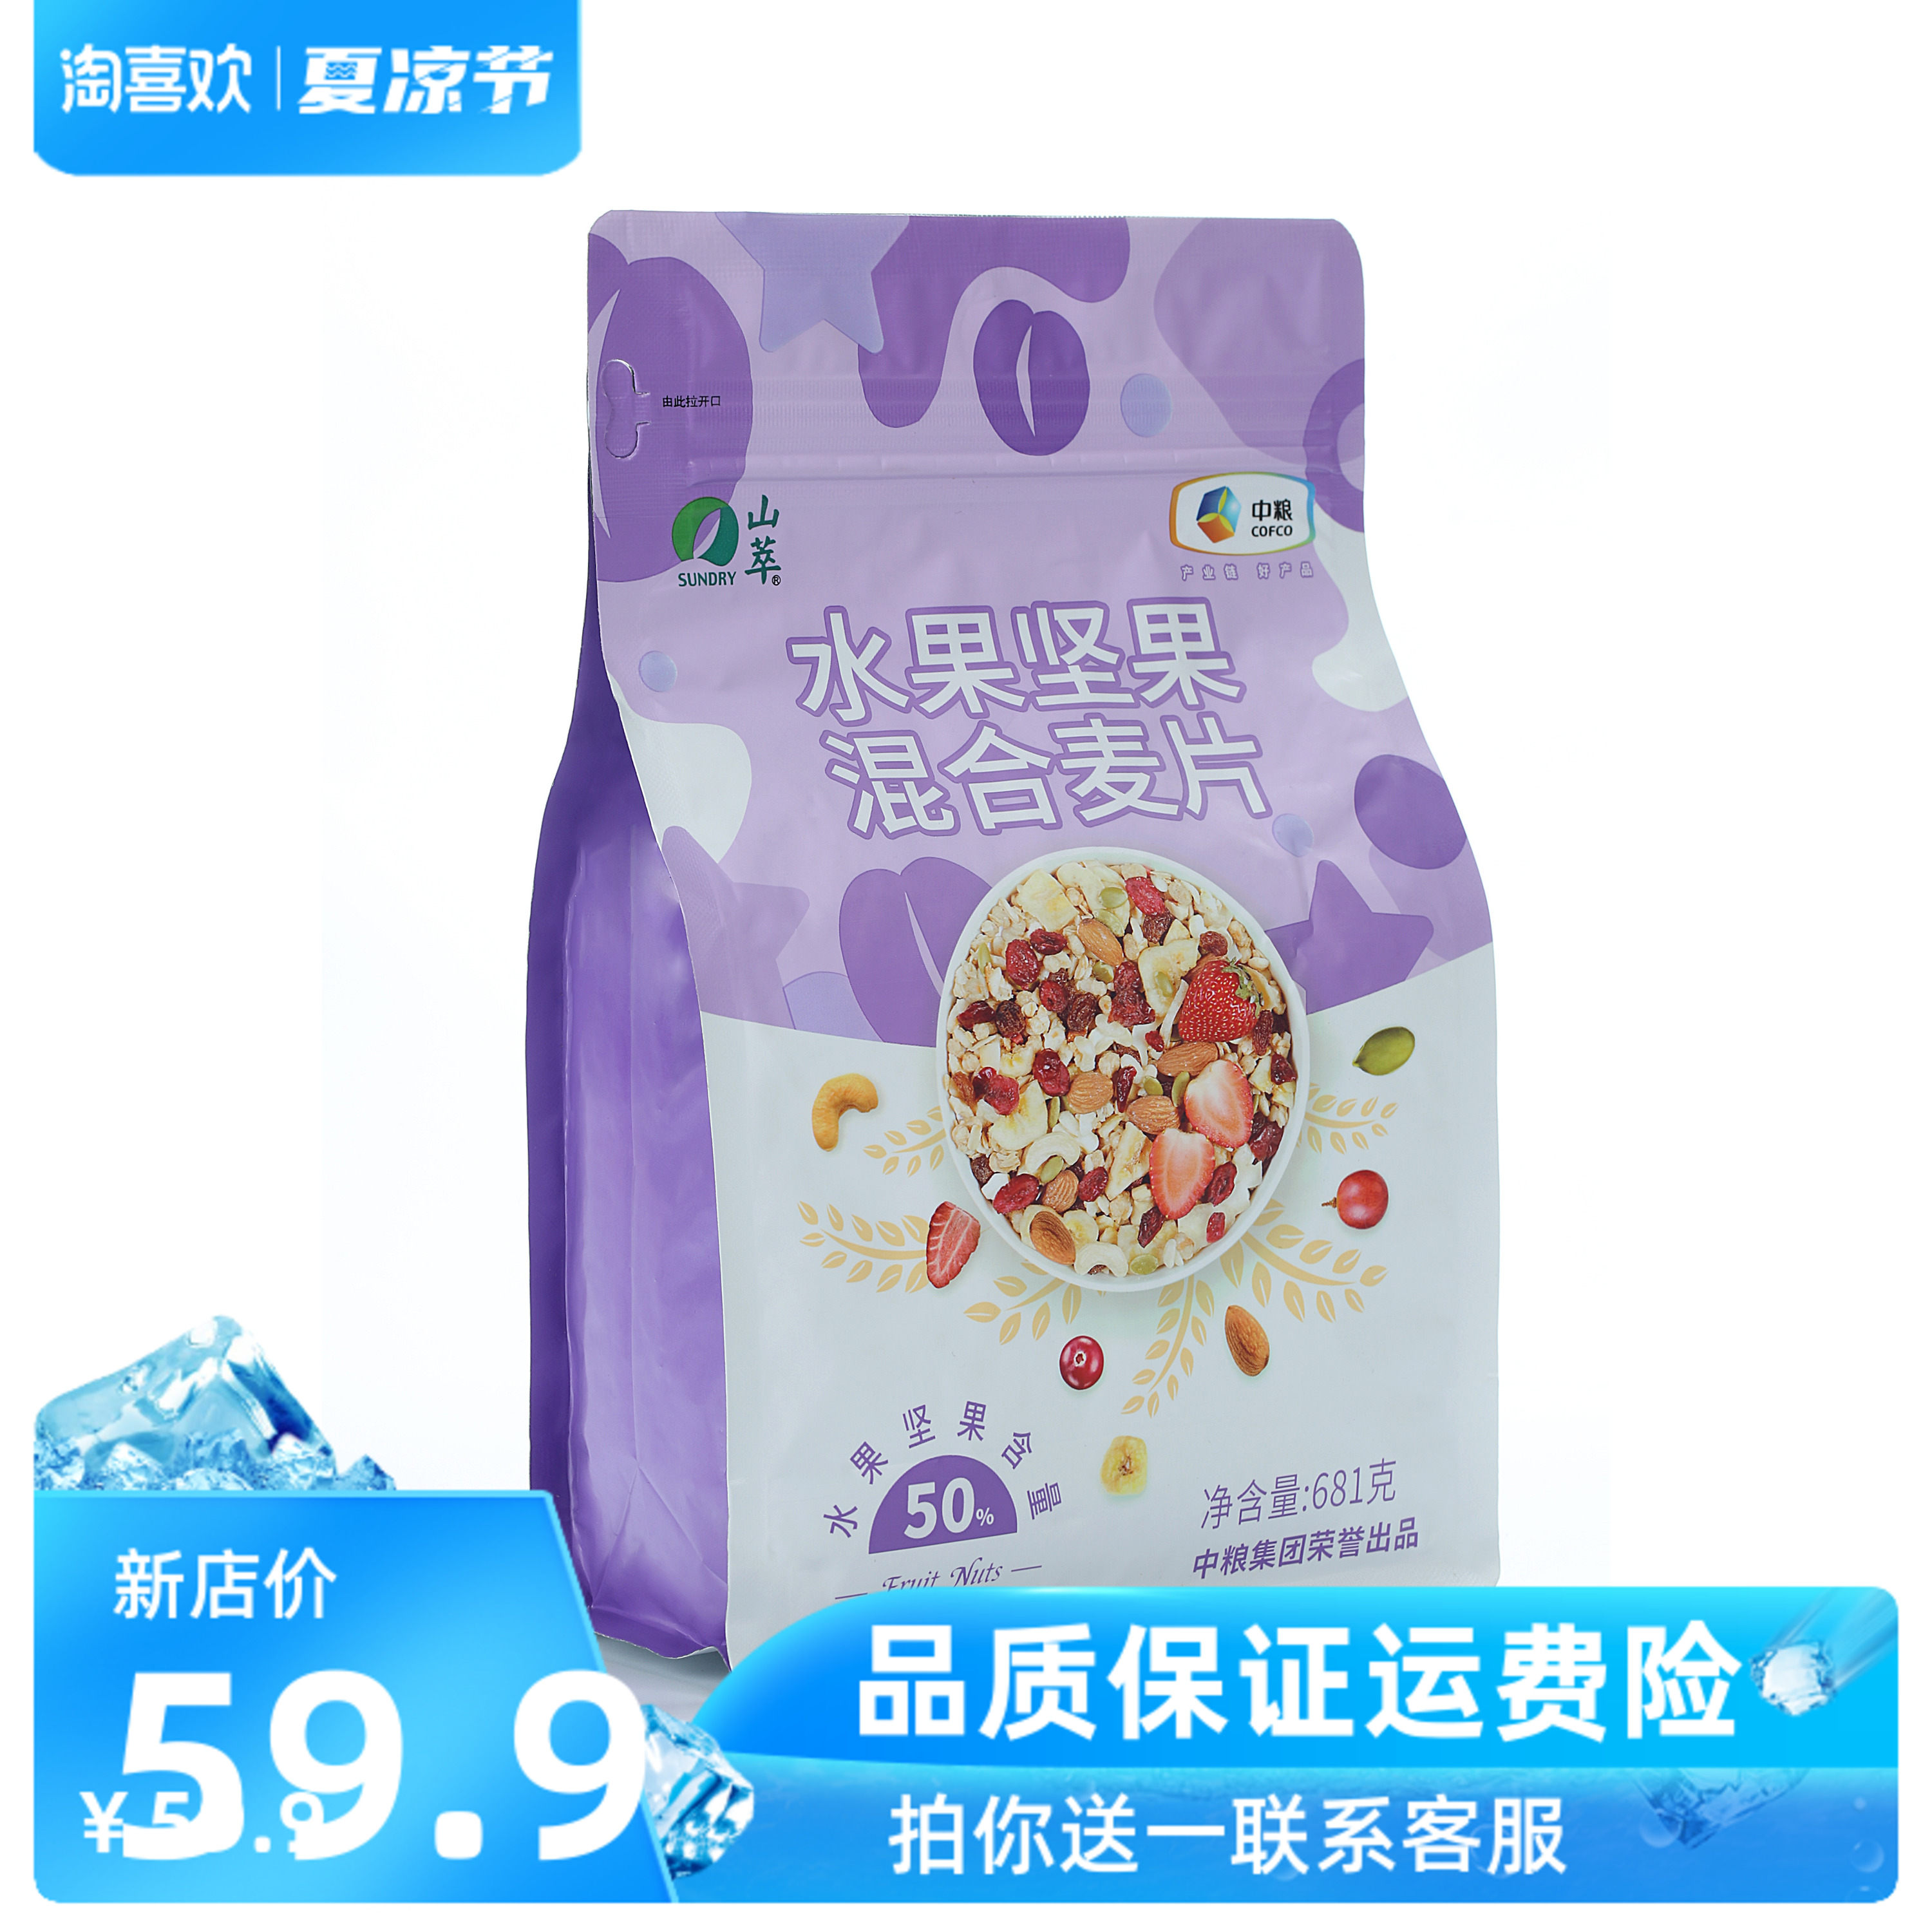 COFCO mountain extract 50% fruit and nuts mixed with roasted oatmeal fruit